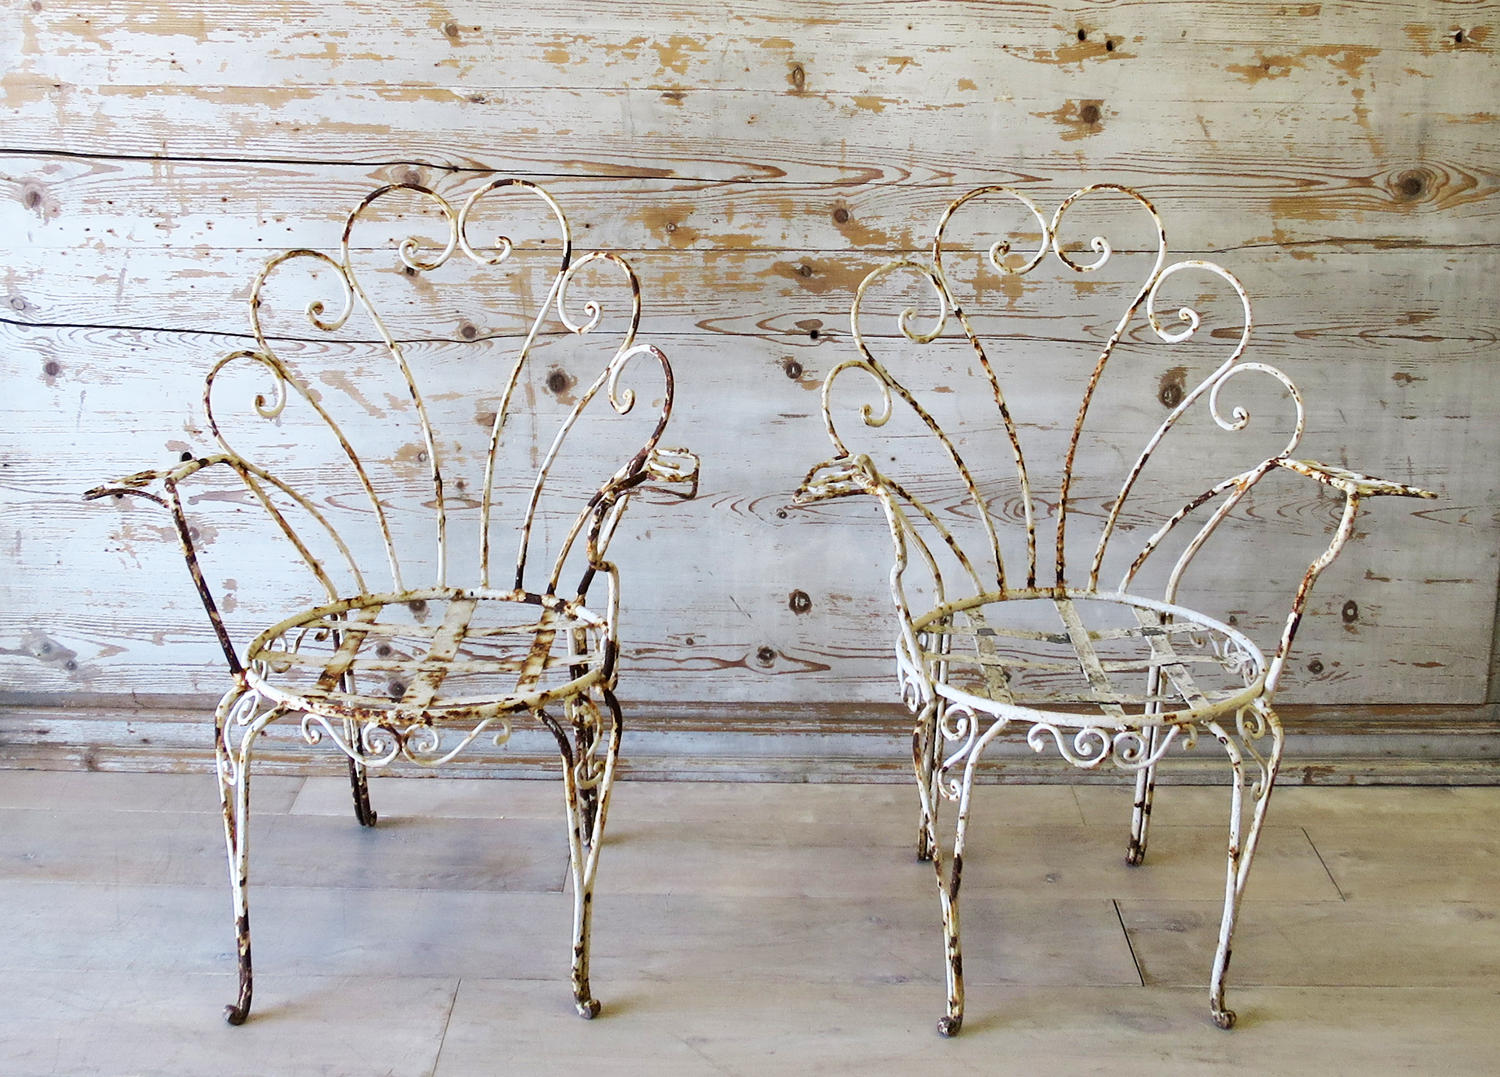 Pair of Funky Iron Garden Chairs - circa 1950